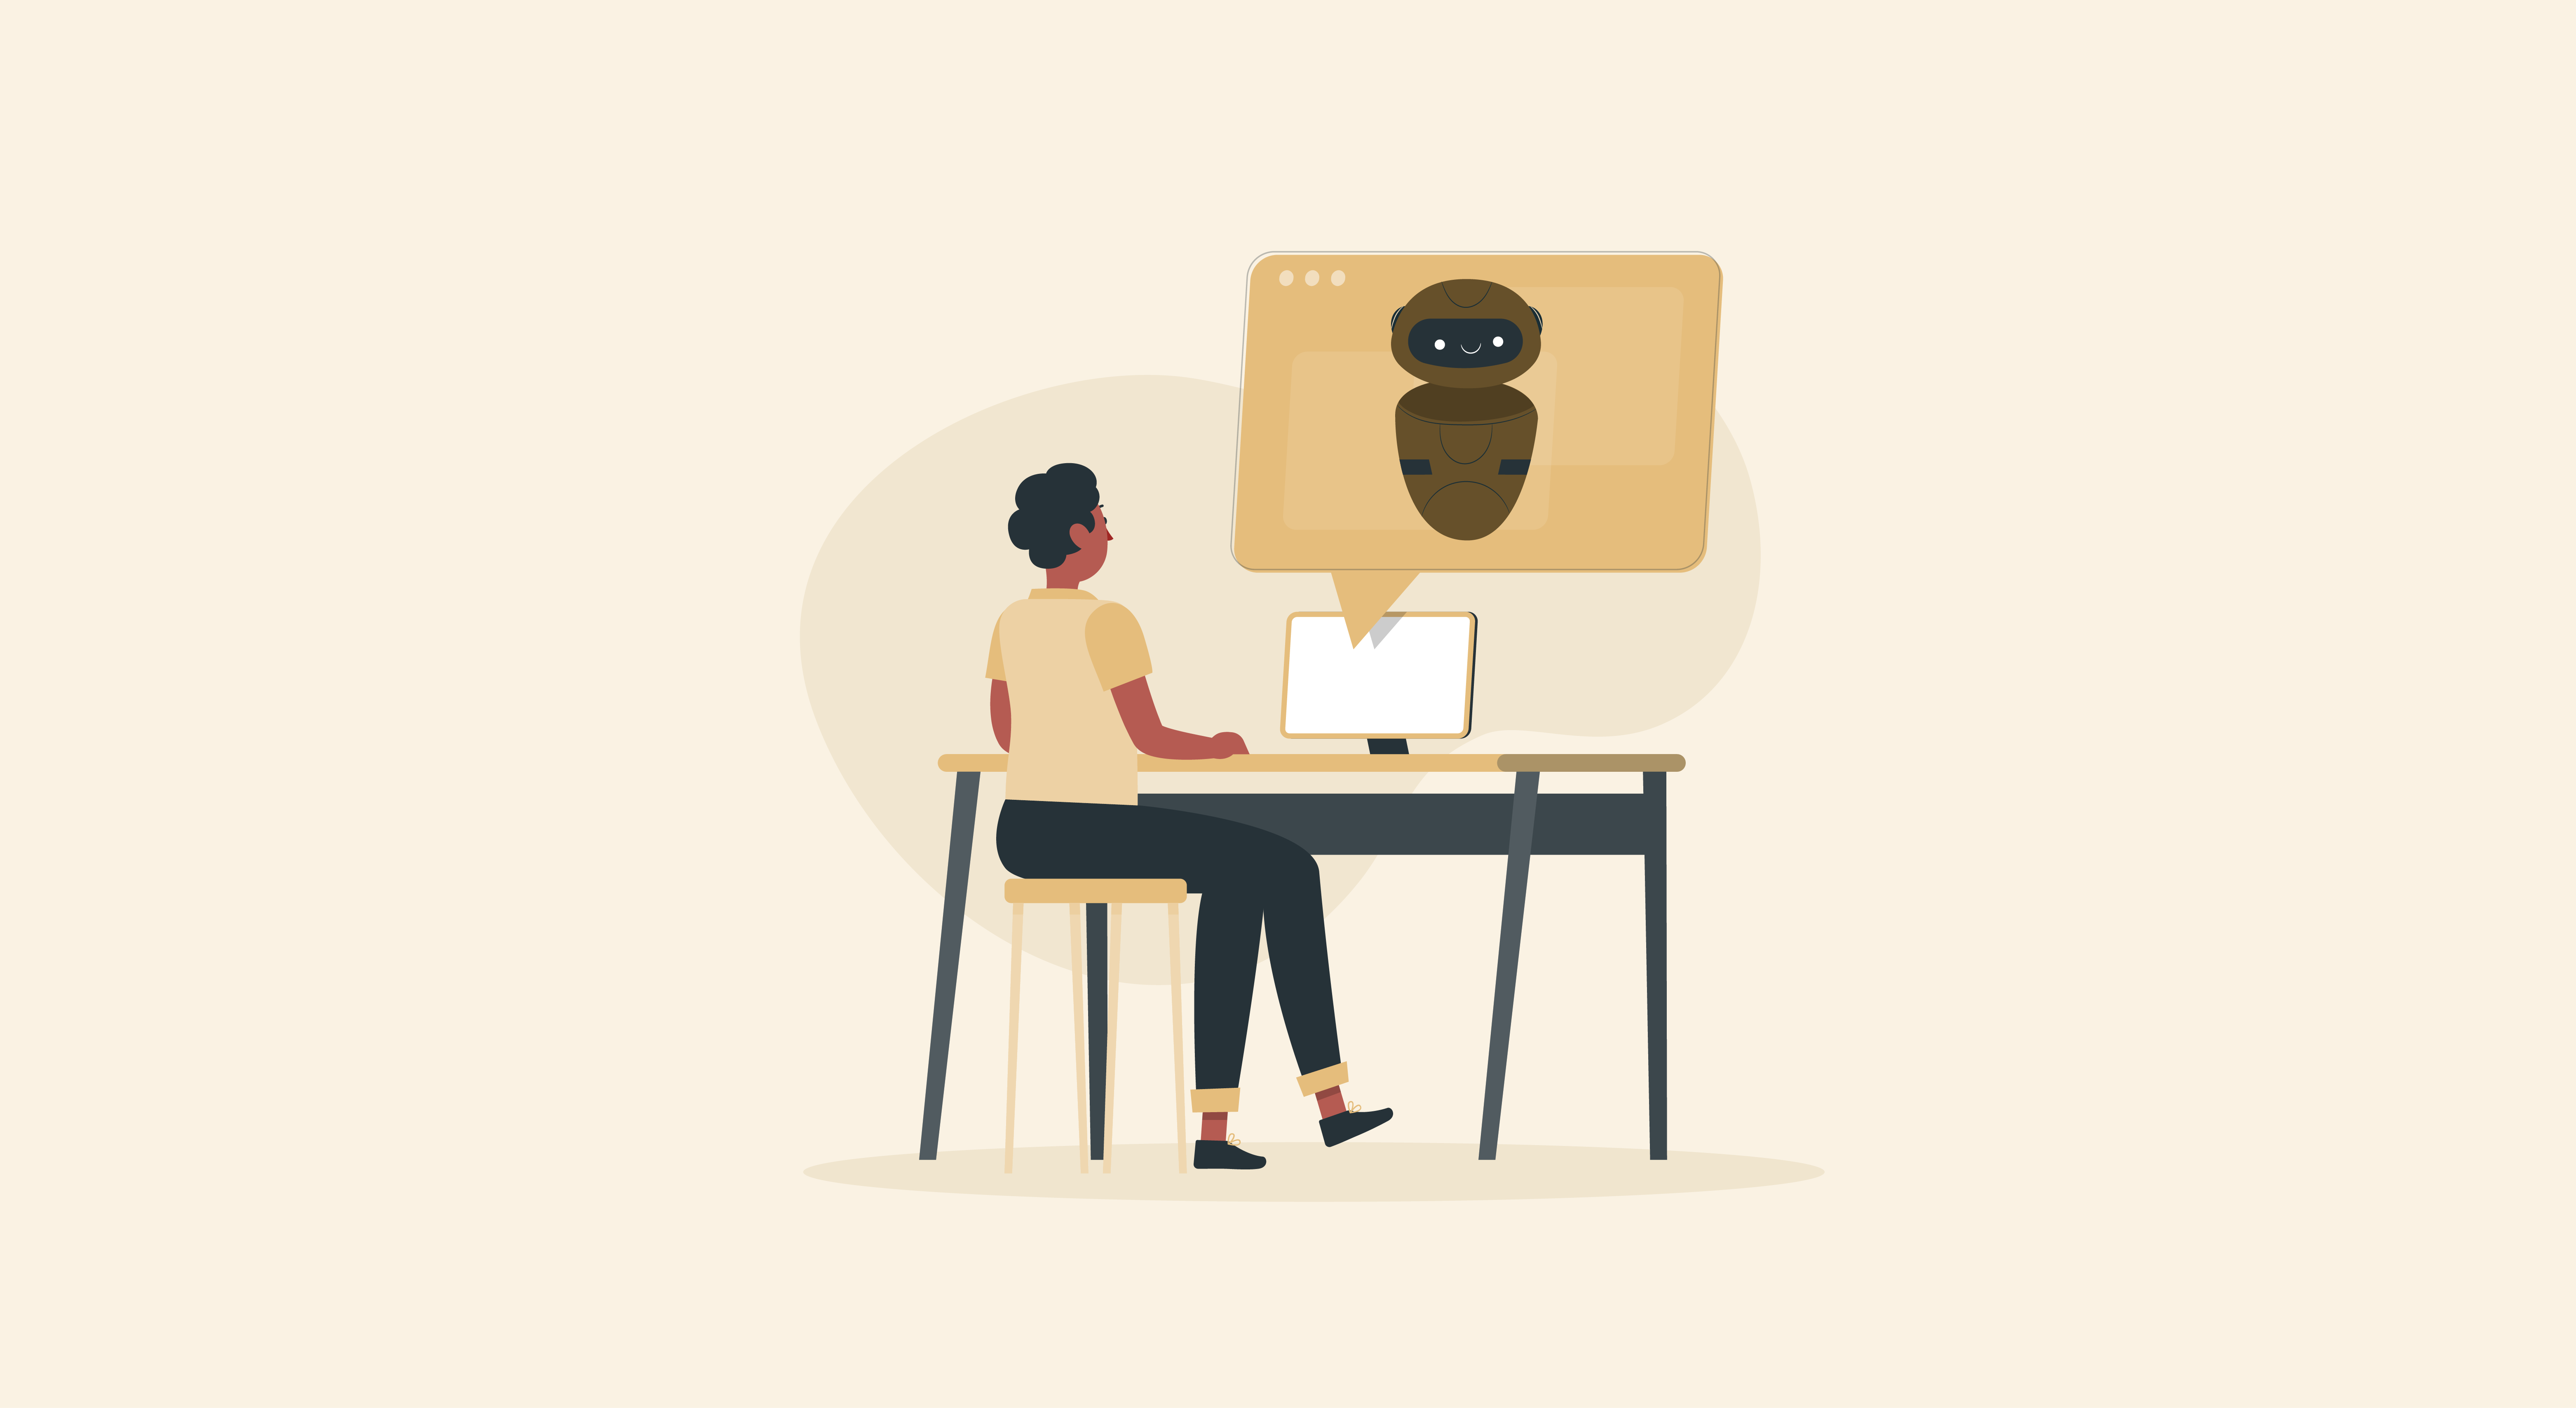 Chatbots in IT: Why Should You Use Chatbots for IT Support?